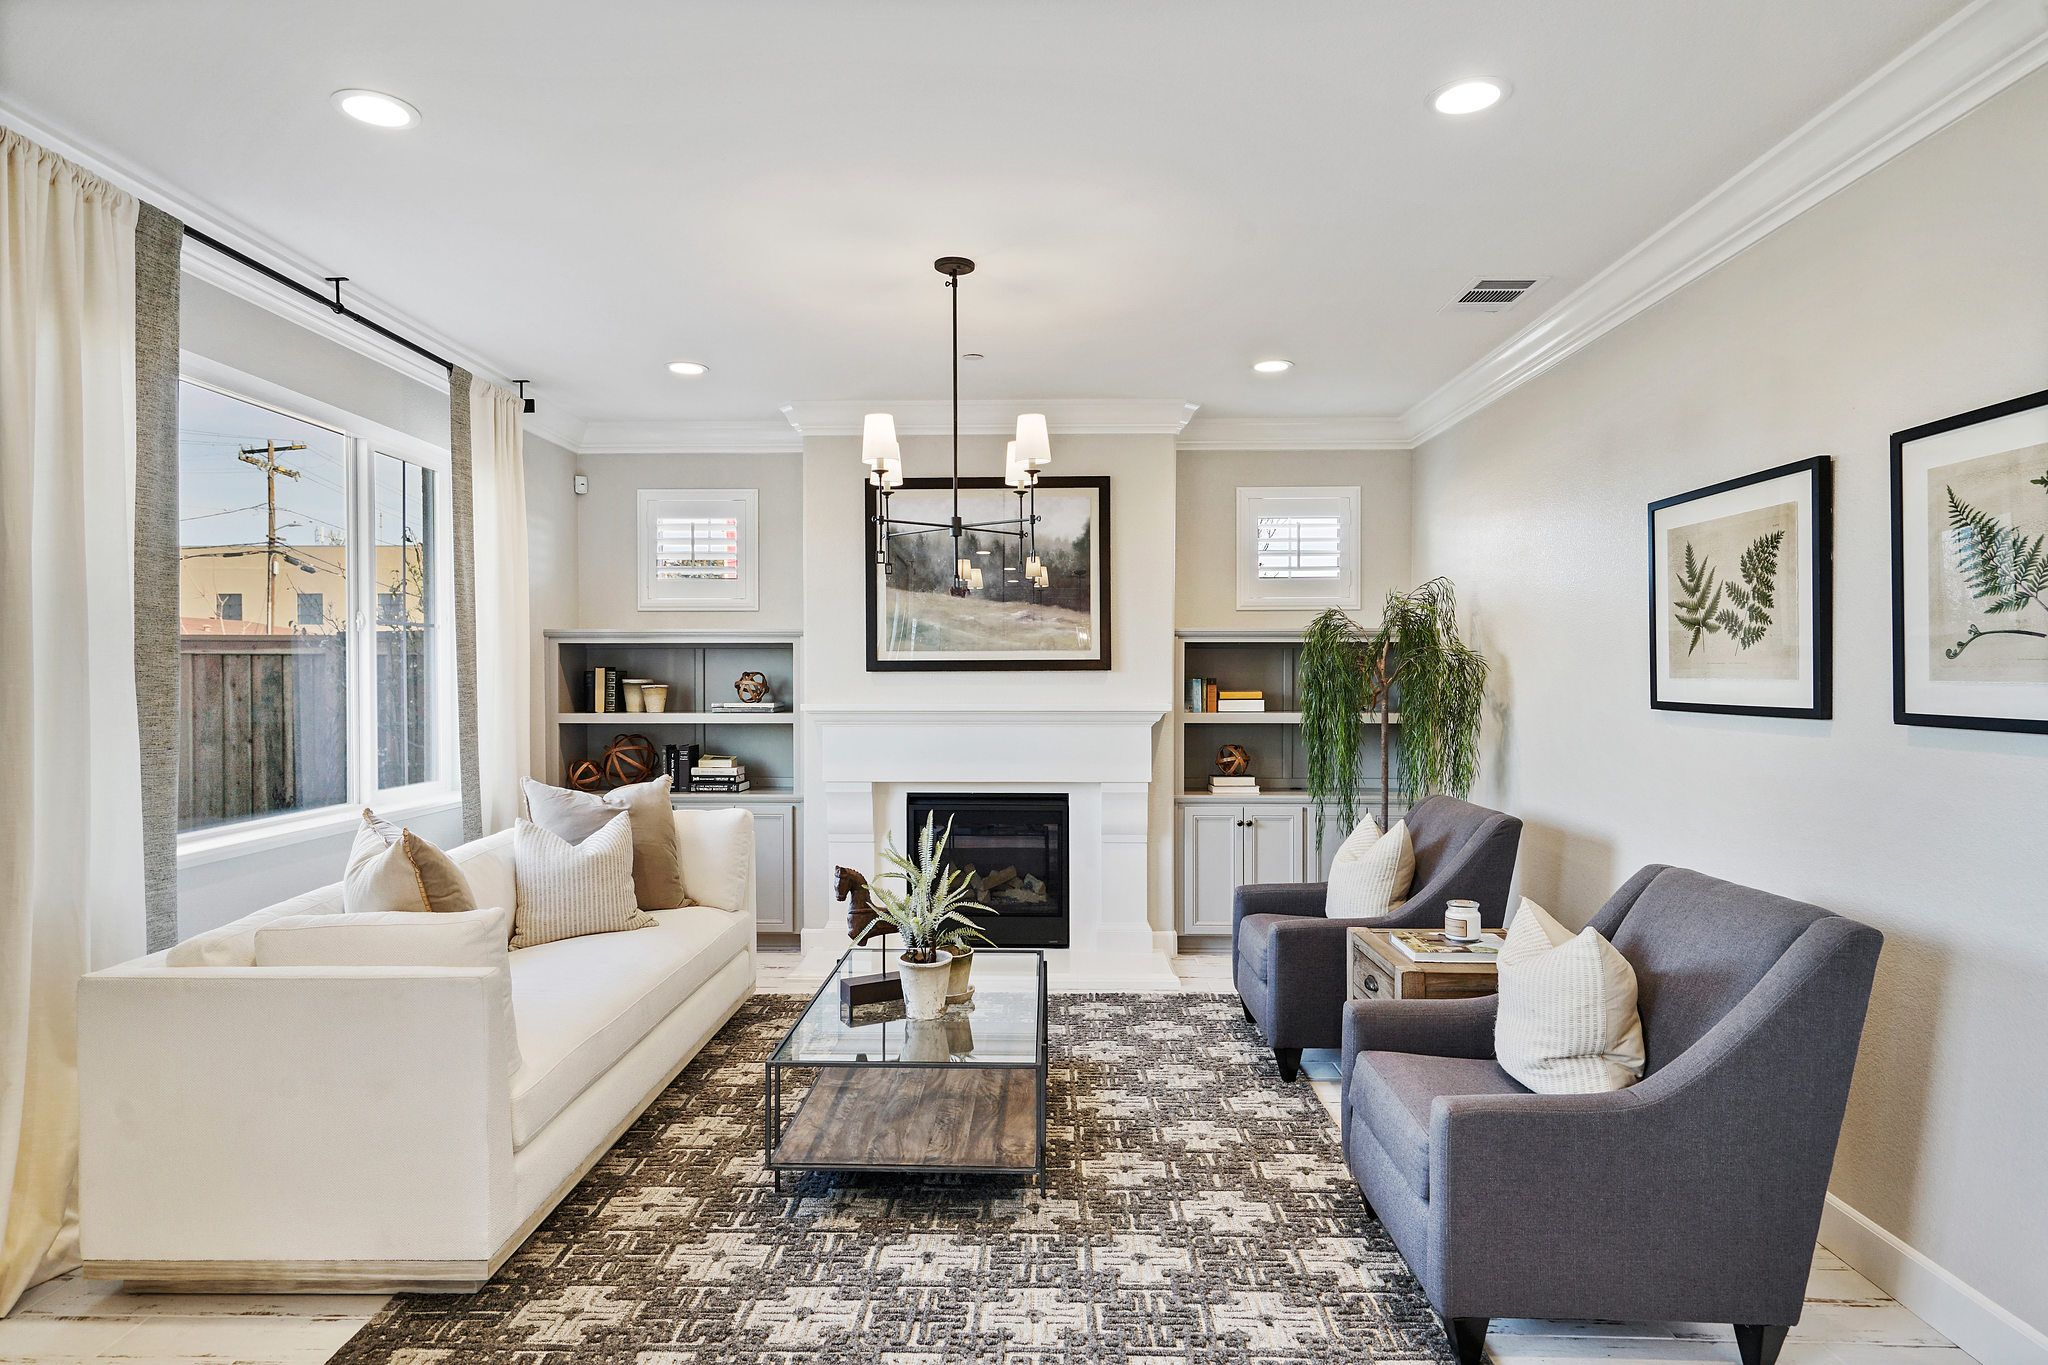 Living Area featured in the Avalon By Discovery Homes in Oakland-Alameda, CA